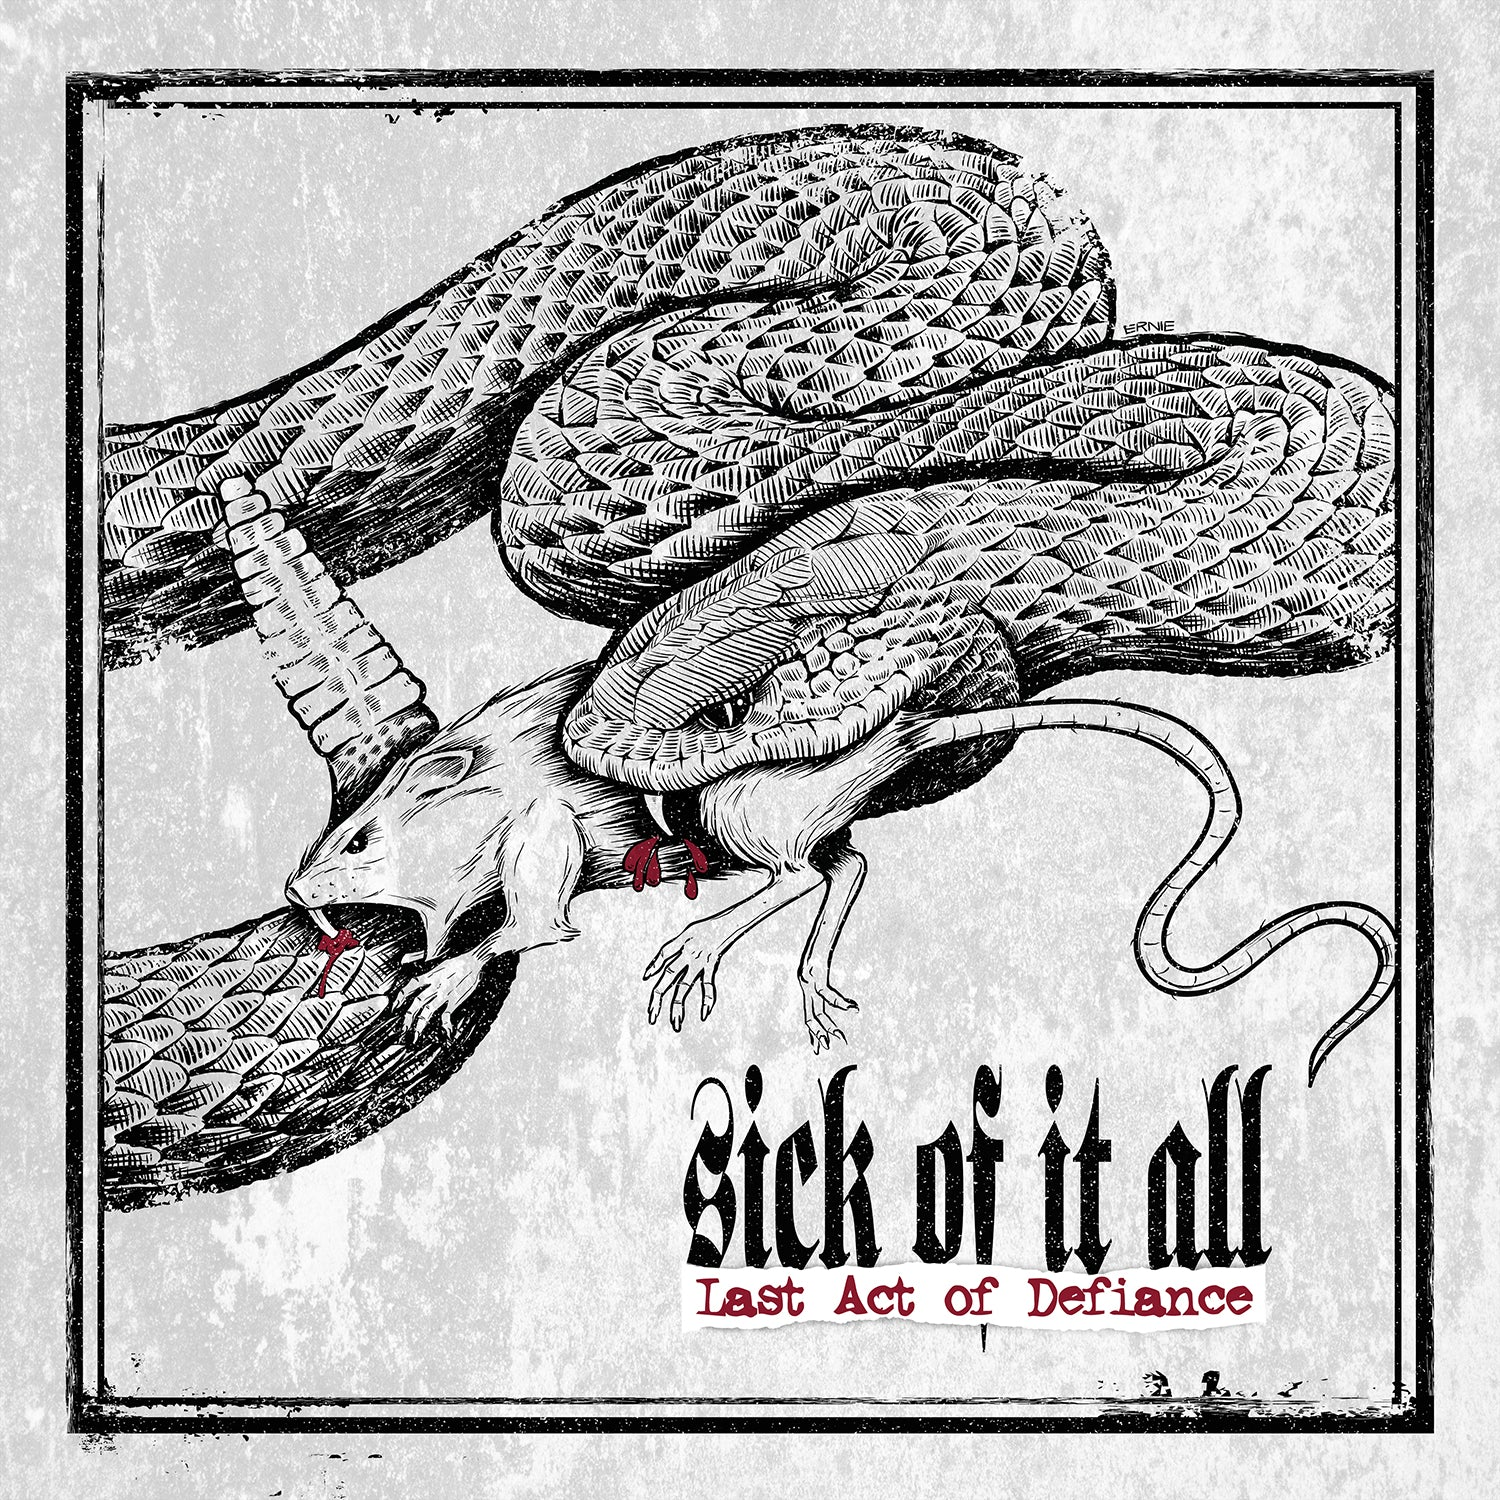 SICK OF IT ALL 'Last Act Of Defiance' LP / GREY EDITION